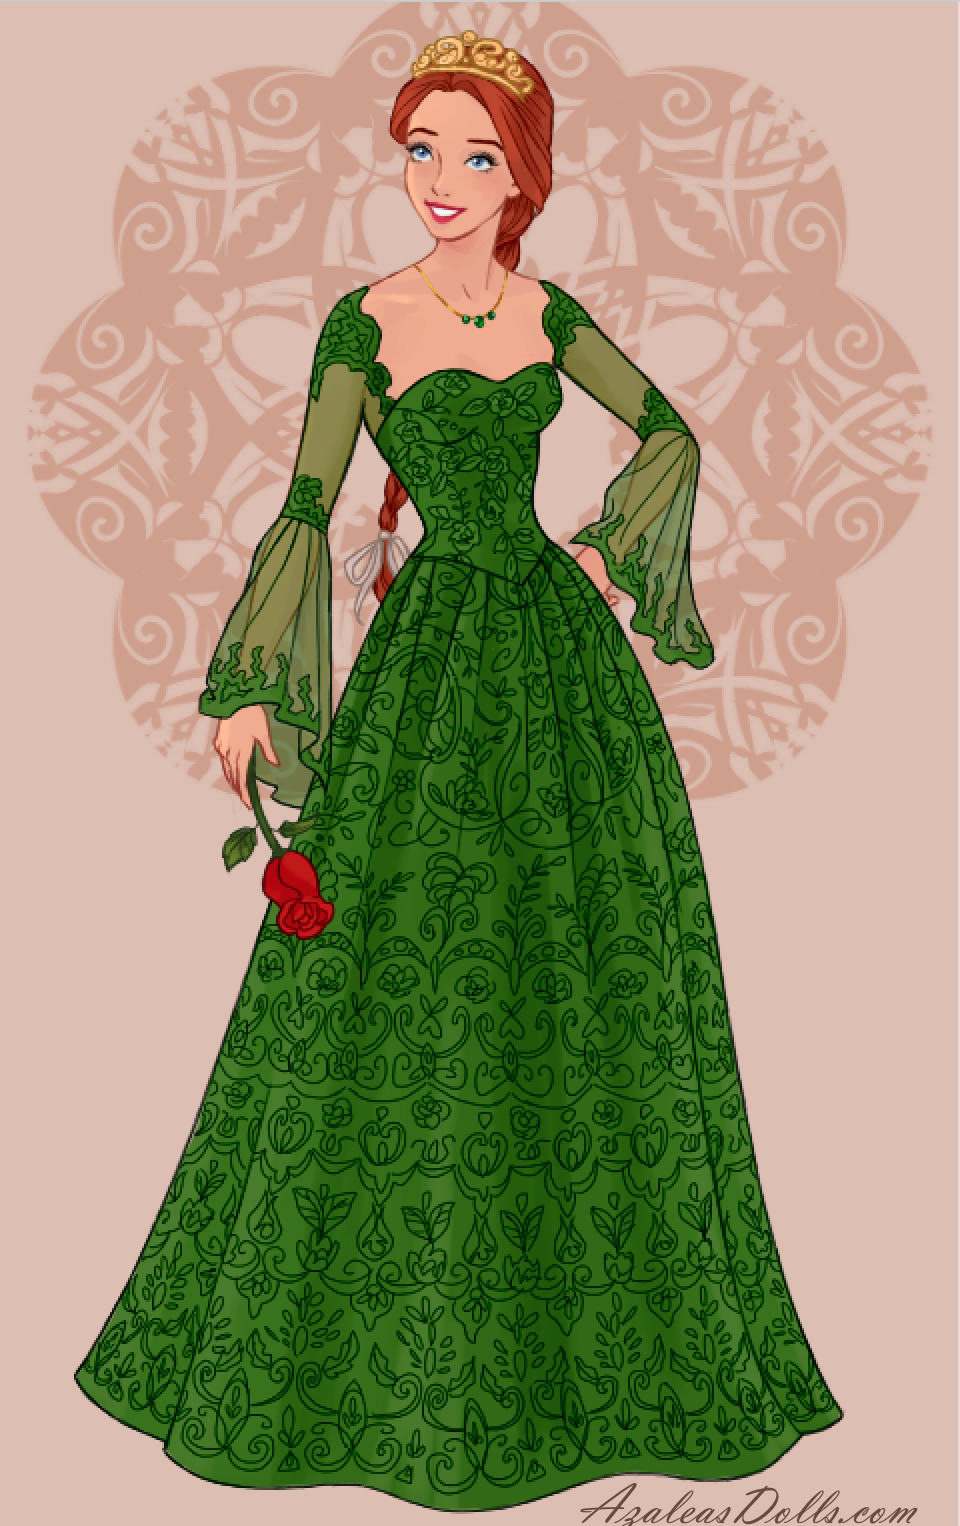 Princess Fiona In Wedding Dress Design Dress Up Game Disney Princess Fashion Princess Fiona Shrek Dress